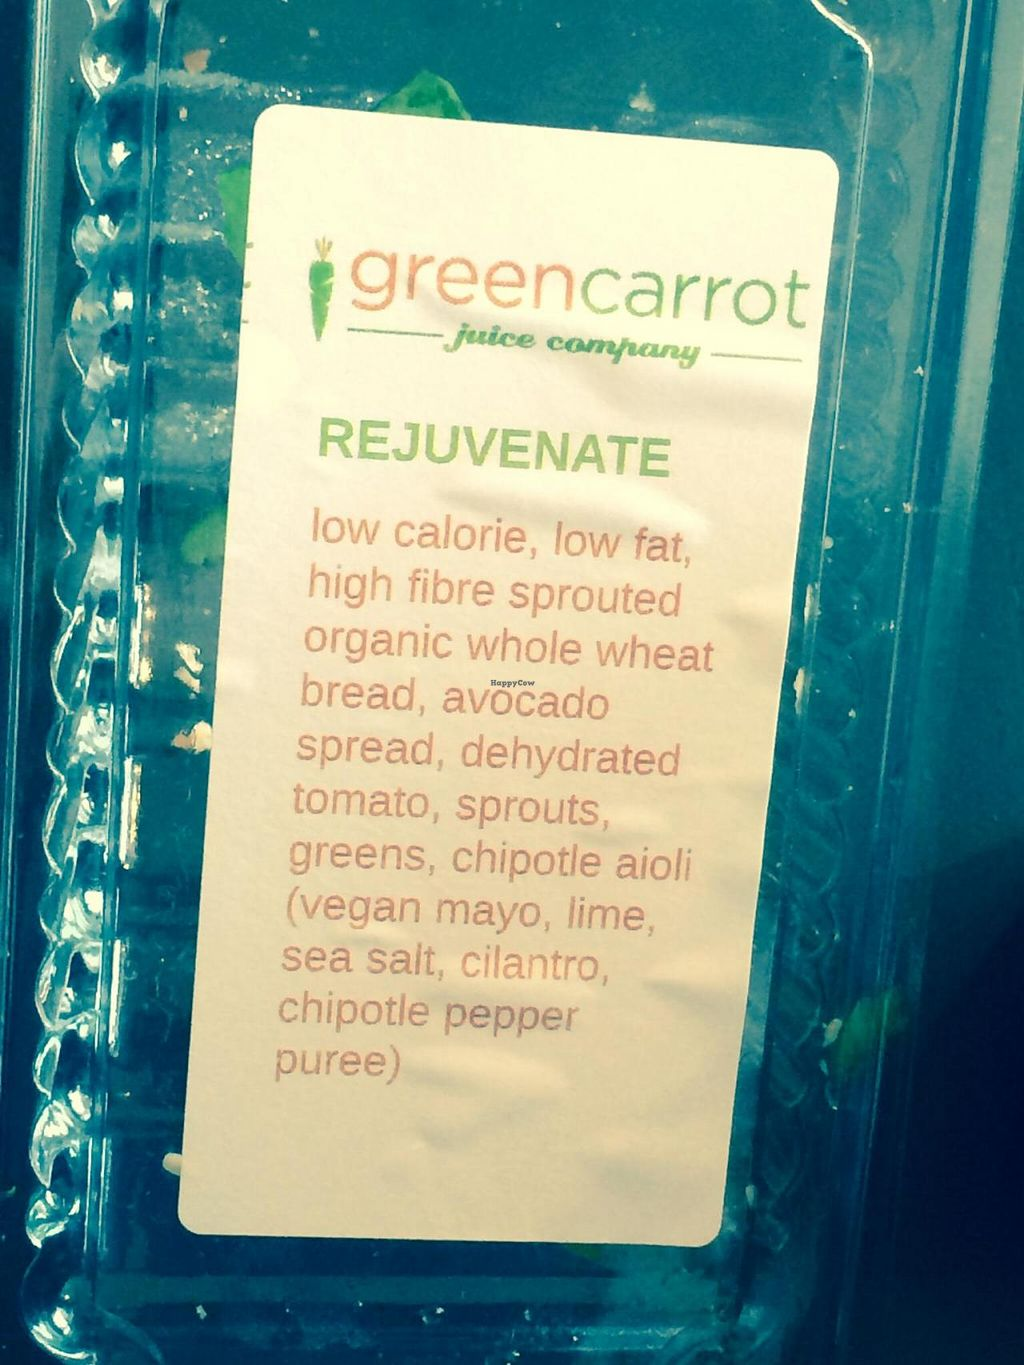 """Photo of Green Carrot Juice Company  by <a href=""""/members/profile/PrairieEarth1"""">PrairieEarth1</a> <br/>Rejuvenate sandwich <br/> May 20, 2014  - <a href='/contact/abuse/image/47489/70384'>Report</a>"""